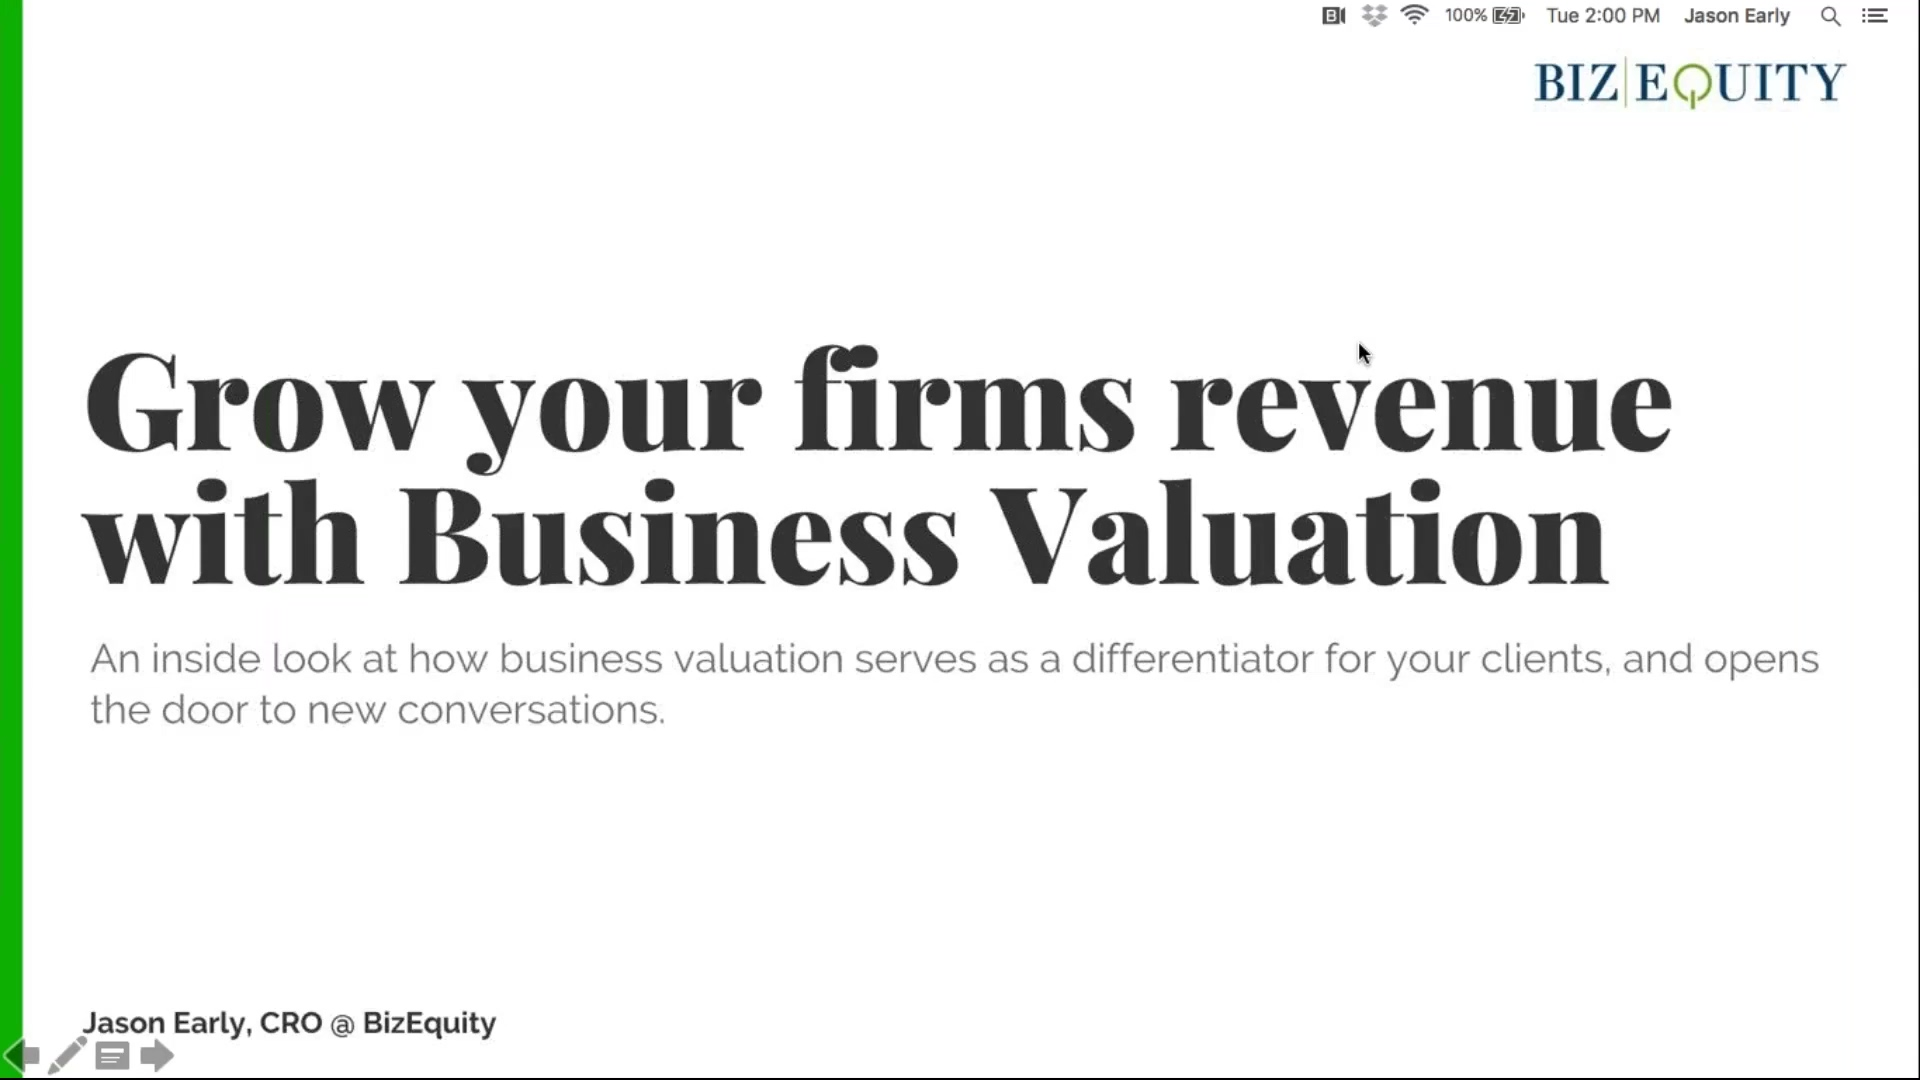 Grow Your Firm's Revenue Using Business Valuation-2